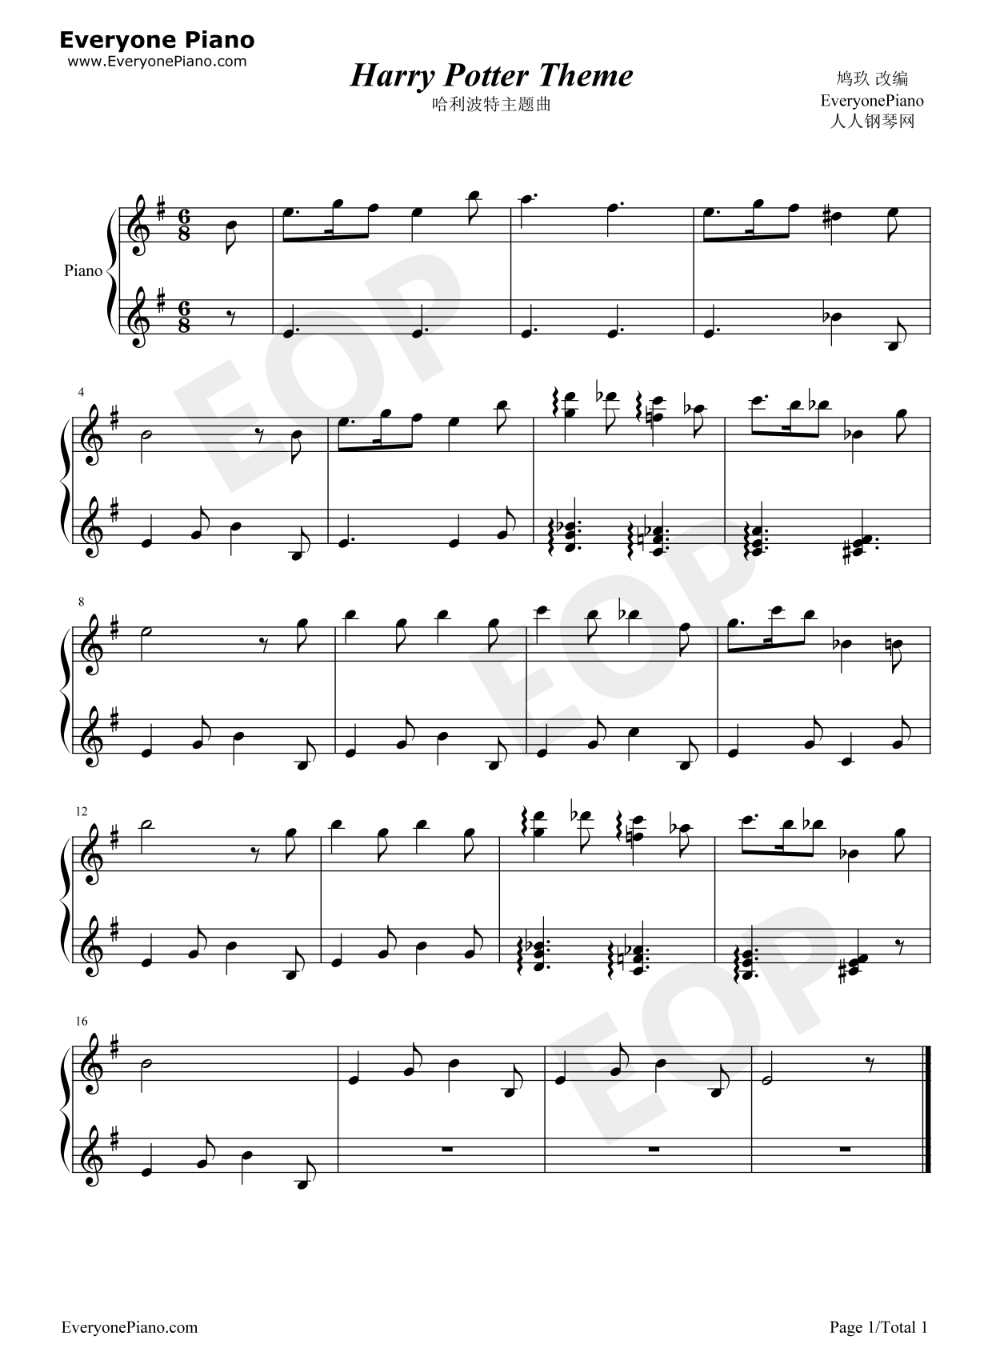 Harry Potter Theme Stave Preview Harry Potter Theme Harry Potter Song Harry Potter Music